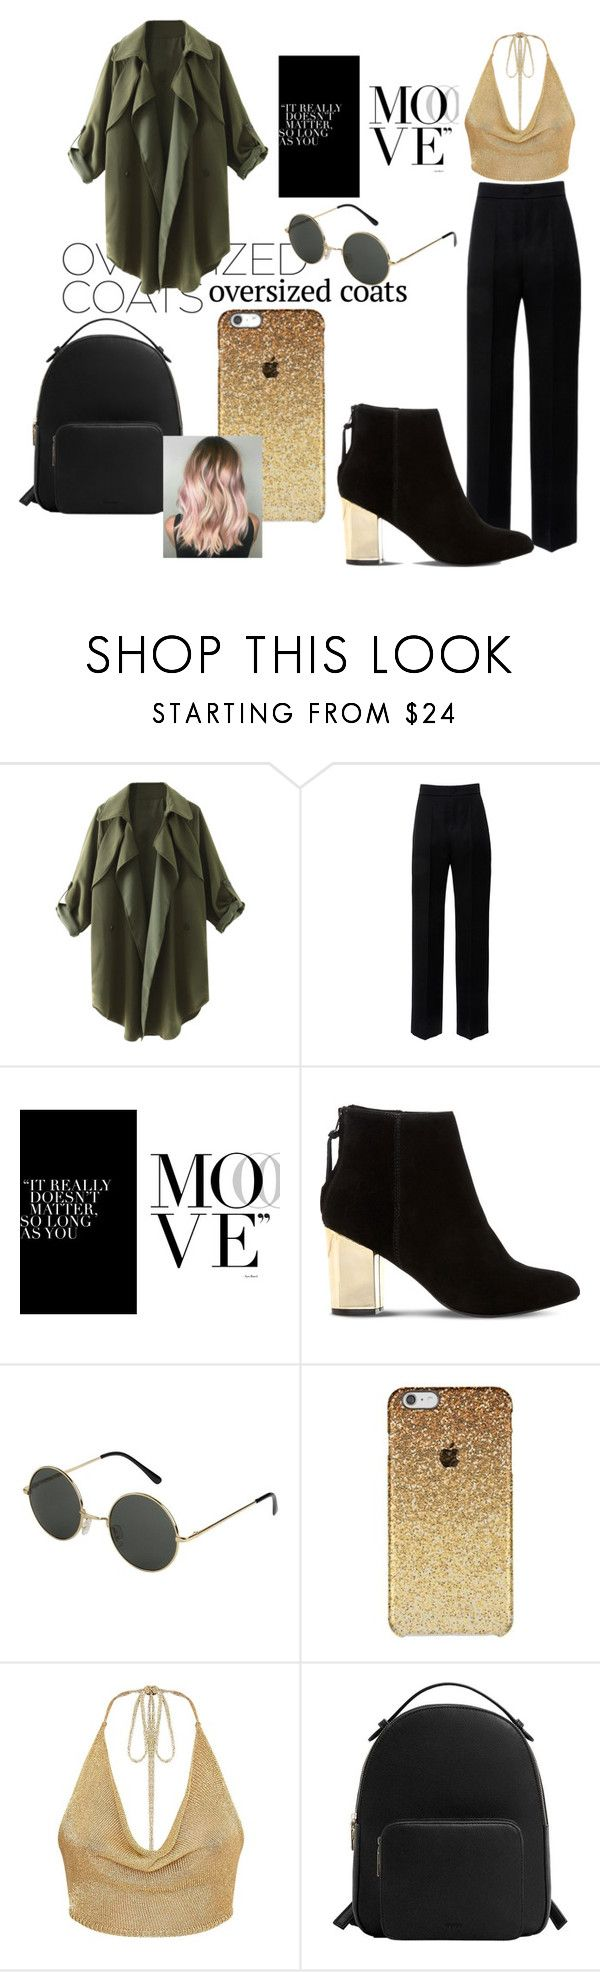 """semi-casual gold outfit"" by pjmislifeu99 ❤ liked on Polyvore featuring Lanvin, Steve Madden and MANGO"